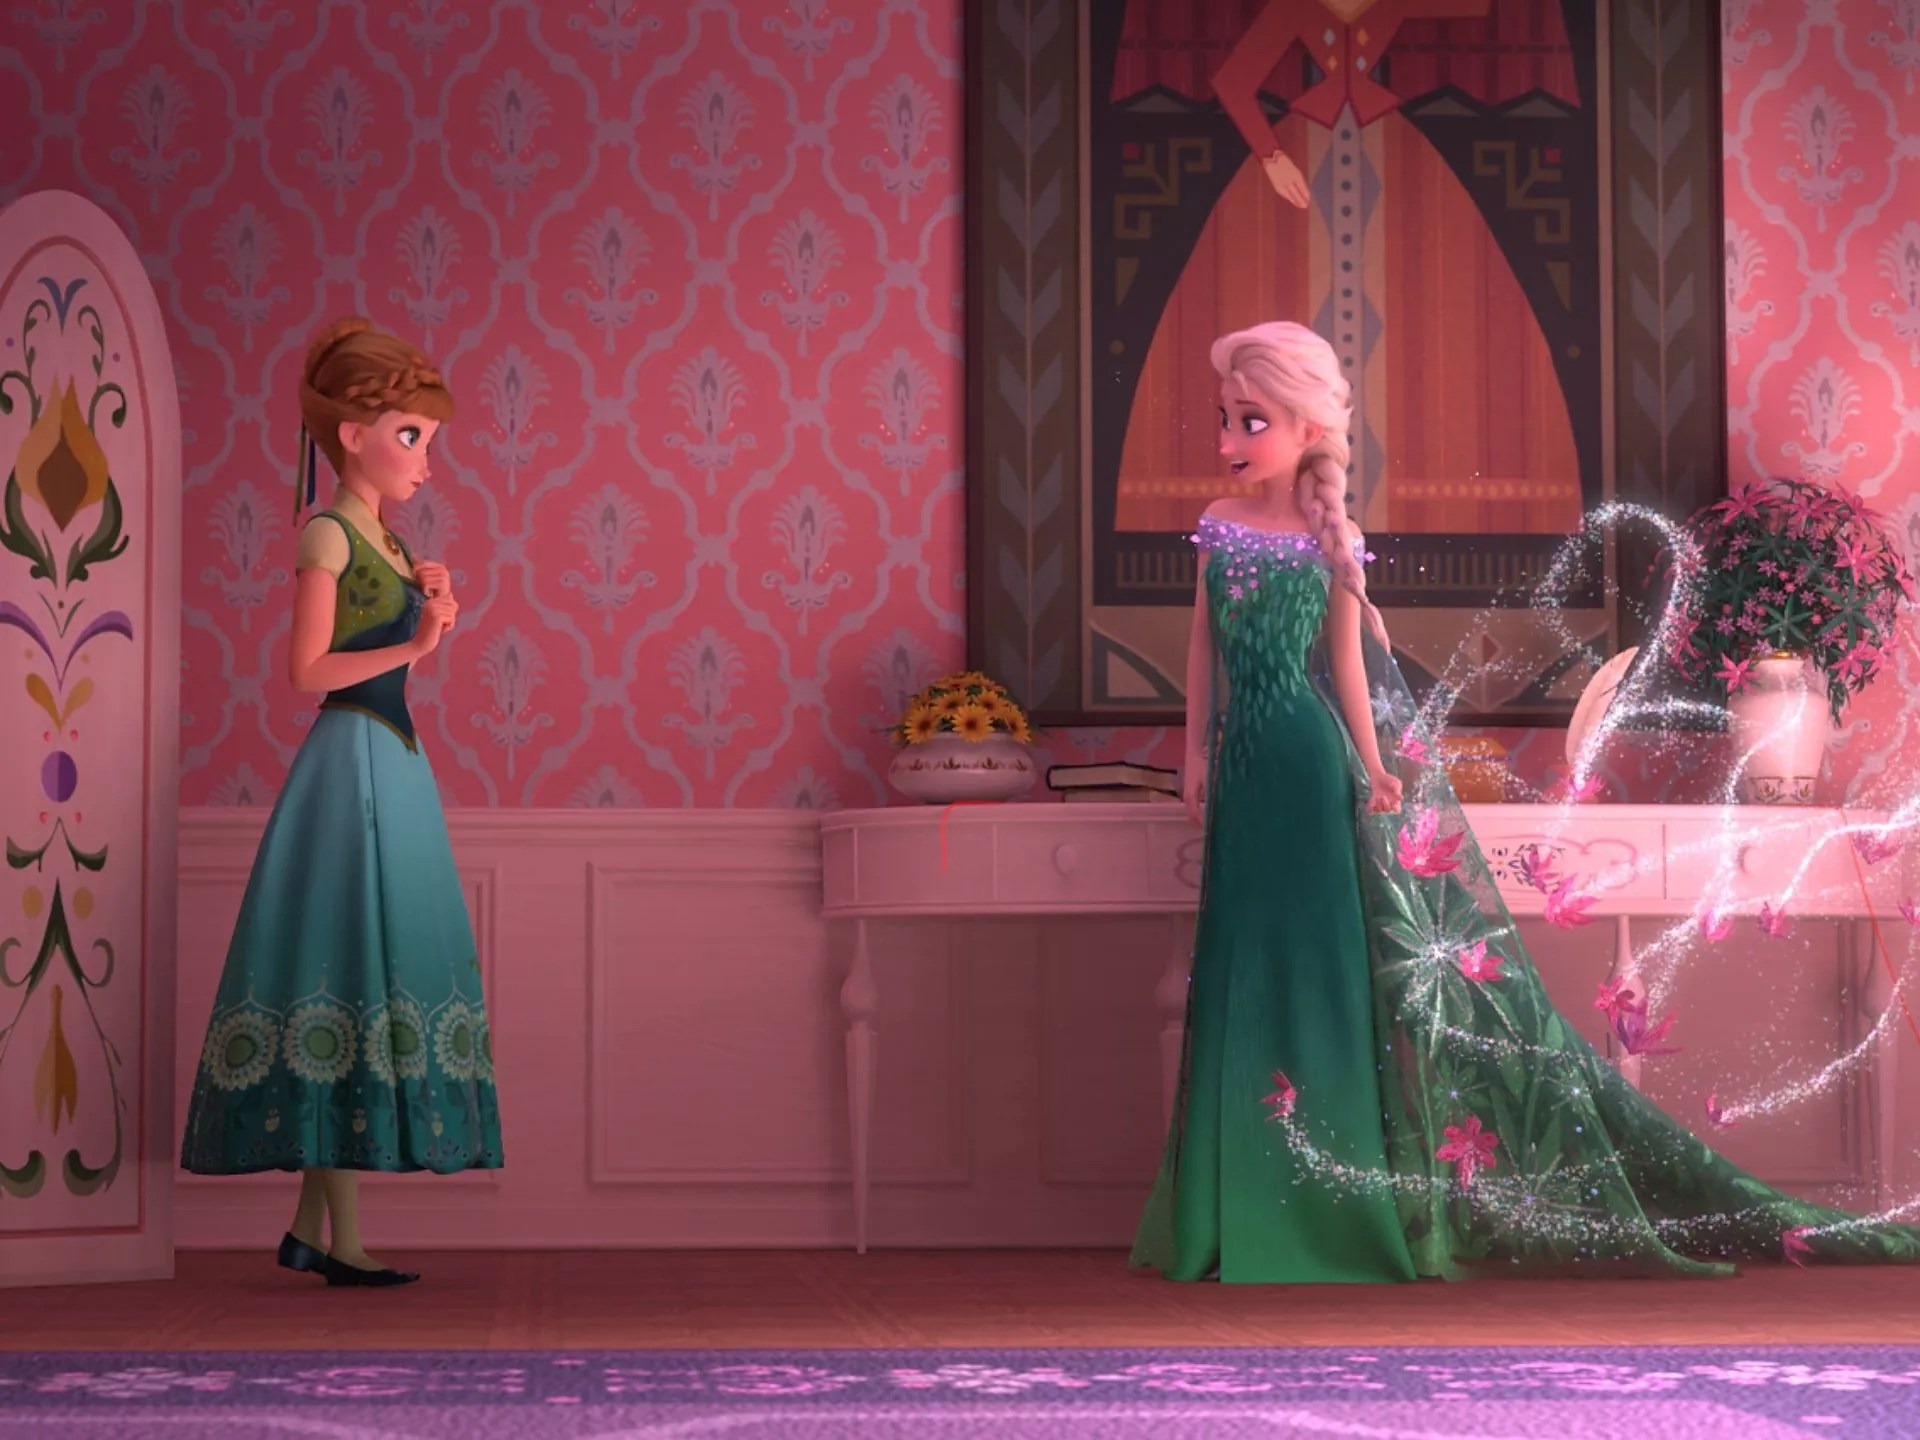 https://i2.wp.com/www.rotoscopers.com/wp-content/uploads/2015/02/Frozen-Fever-Elsa-Anna.jpg